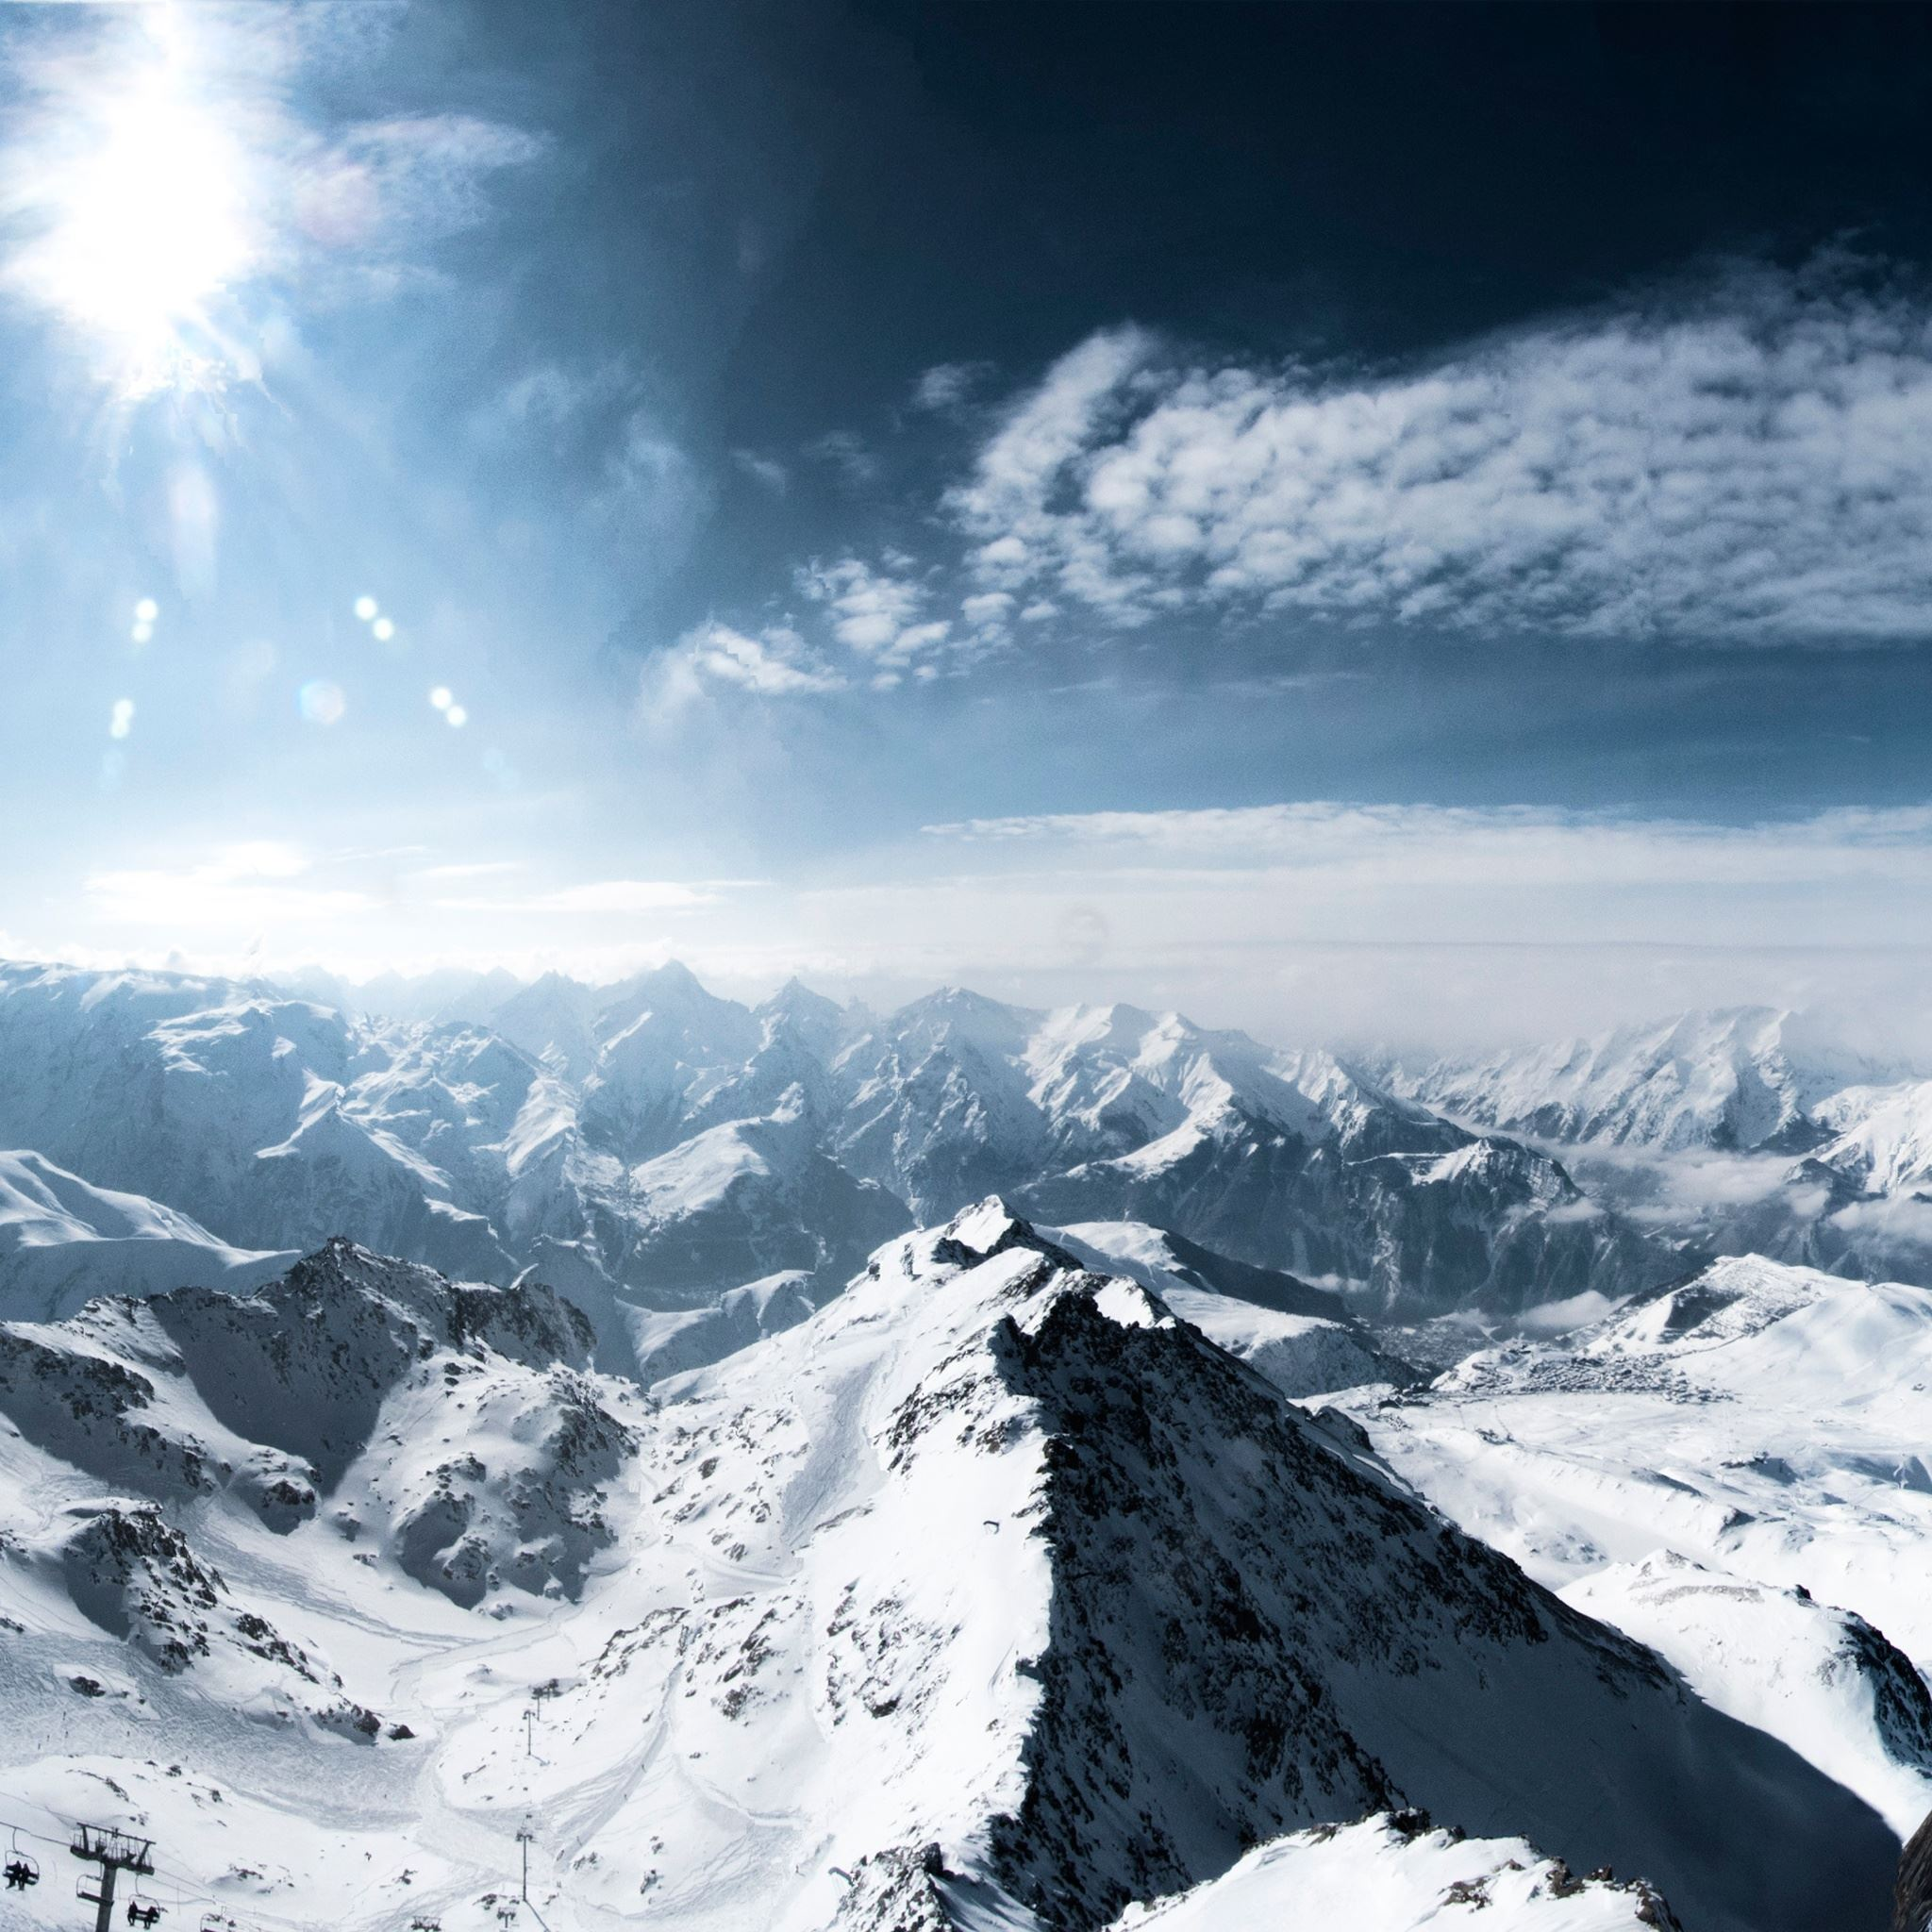 Over the Alps  iPad Air wallpaper